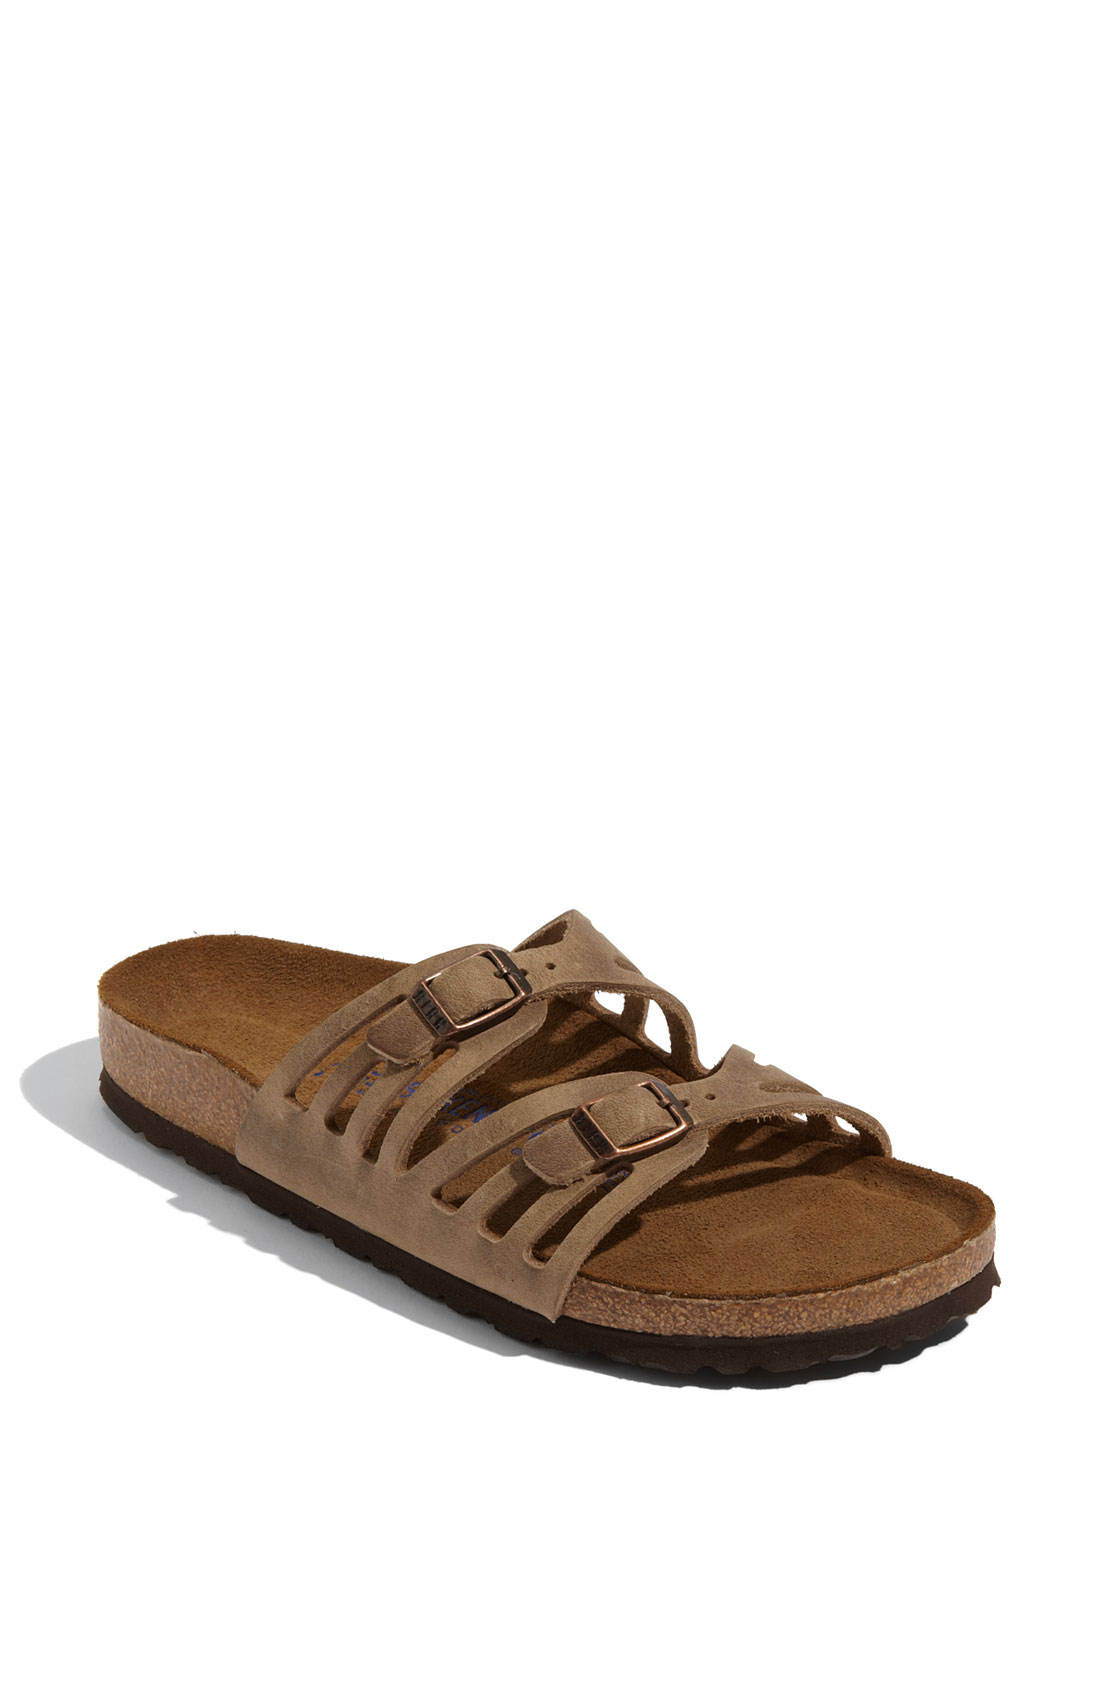 Birkenstock 'granada' Soft Footbed Oiled Leather Sandal in Brown (tobacco) | Lyst